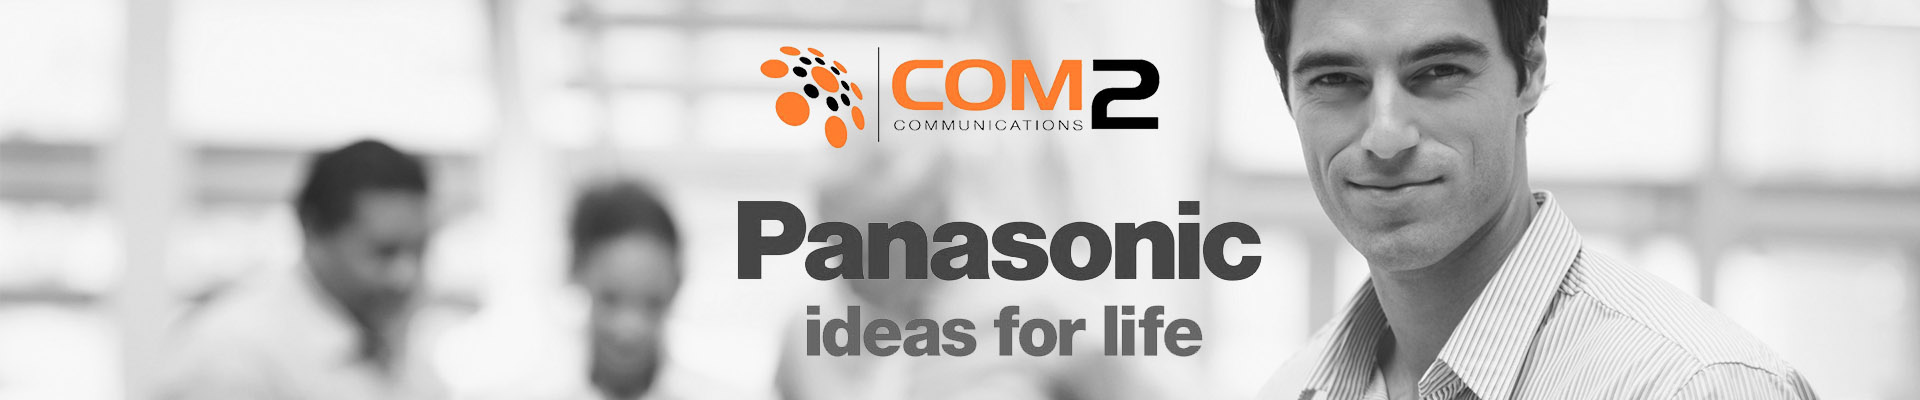 assets/com2-panasonic-ideas-for-life.jpg